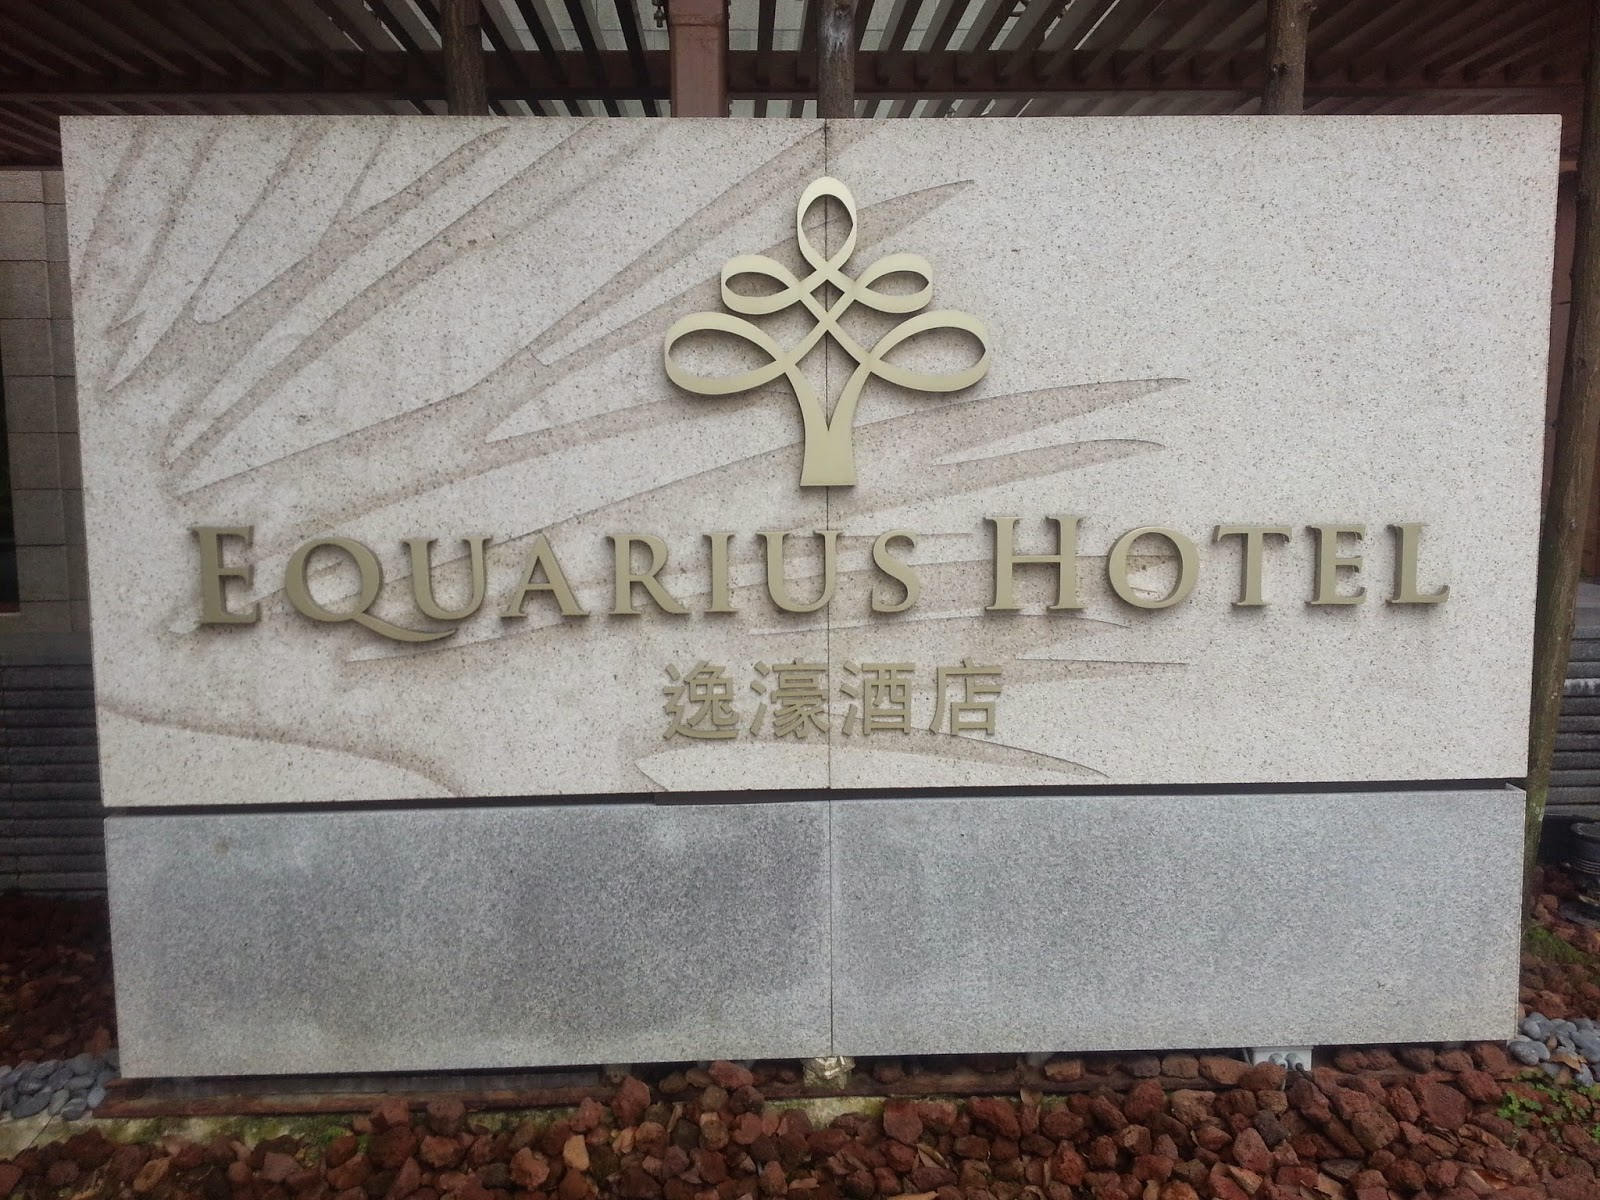 equarius hotela deluxe room singapore room hotel signage by the main entrance of hotel zephyrous travels hotel review equarius deluxe room